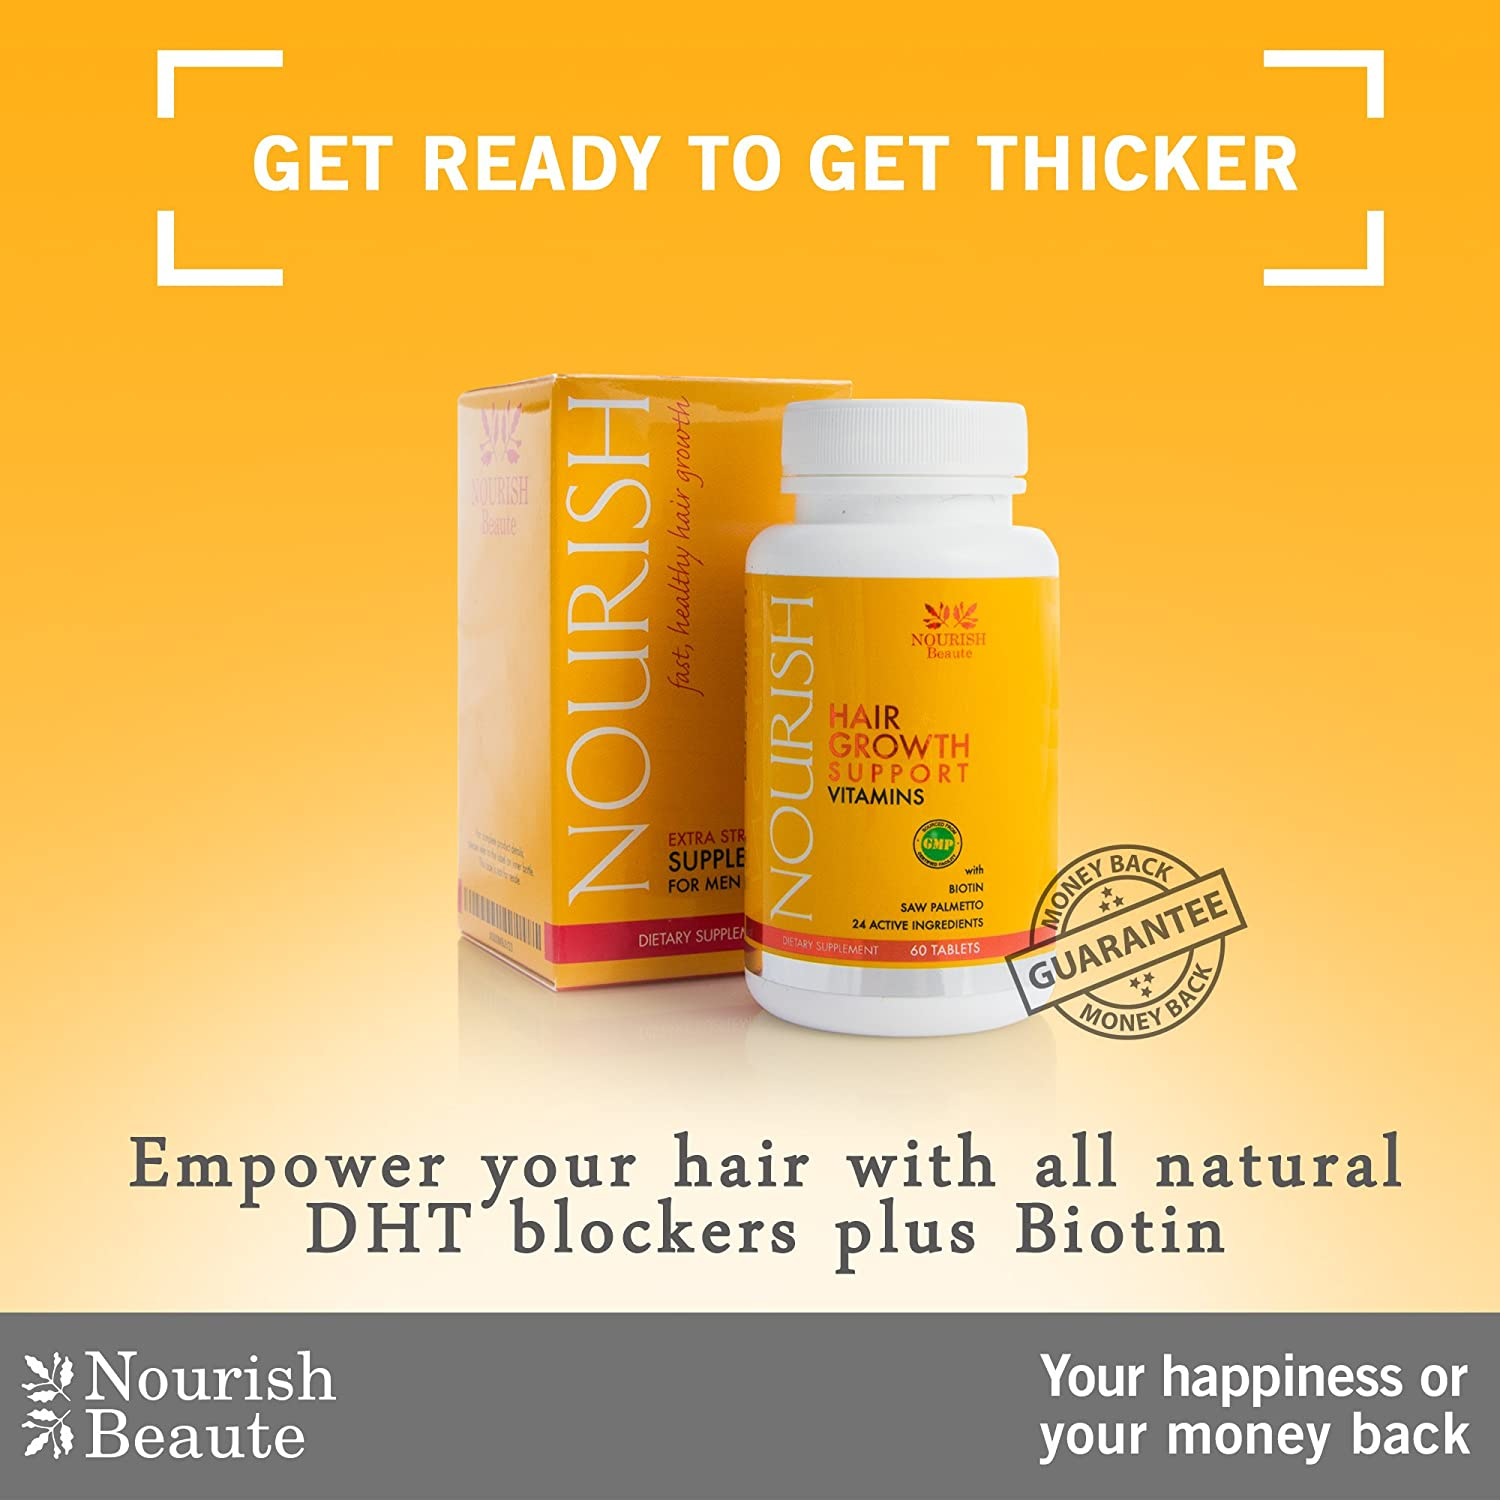 Amazon : Nourish Beaute Hair Loss Supplement  With Biotin And Natural  Dht Blockers  Faster, Thicker Hair Regrowth For Men And Women  1 Month  Supply :